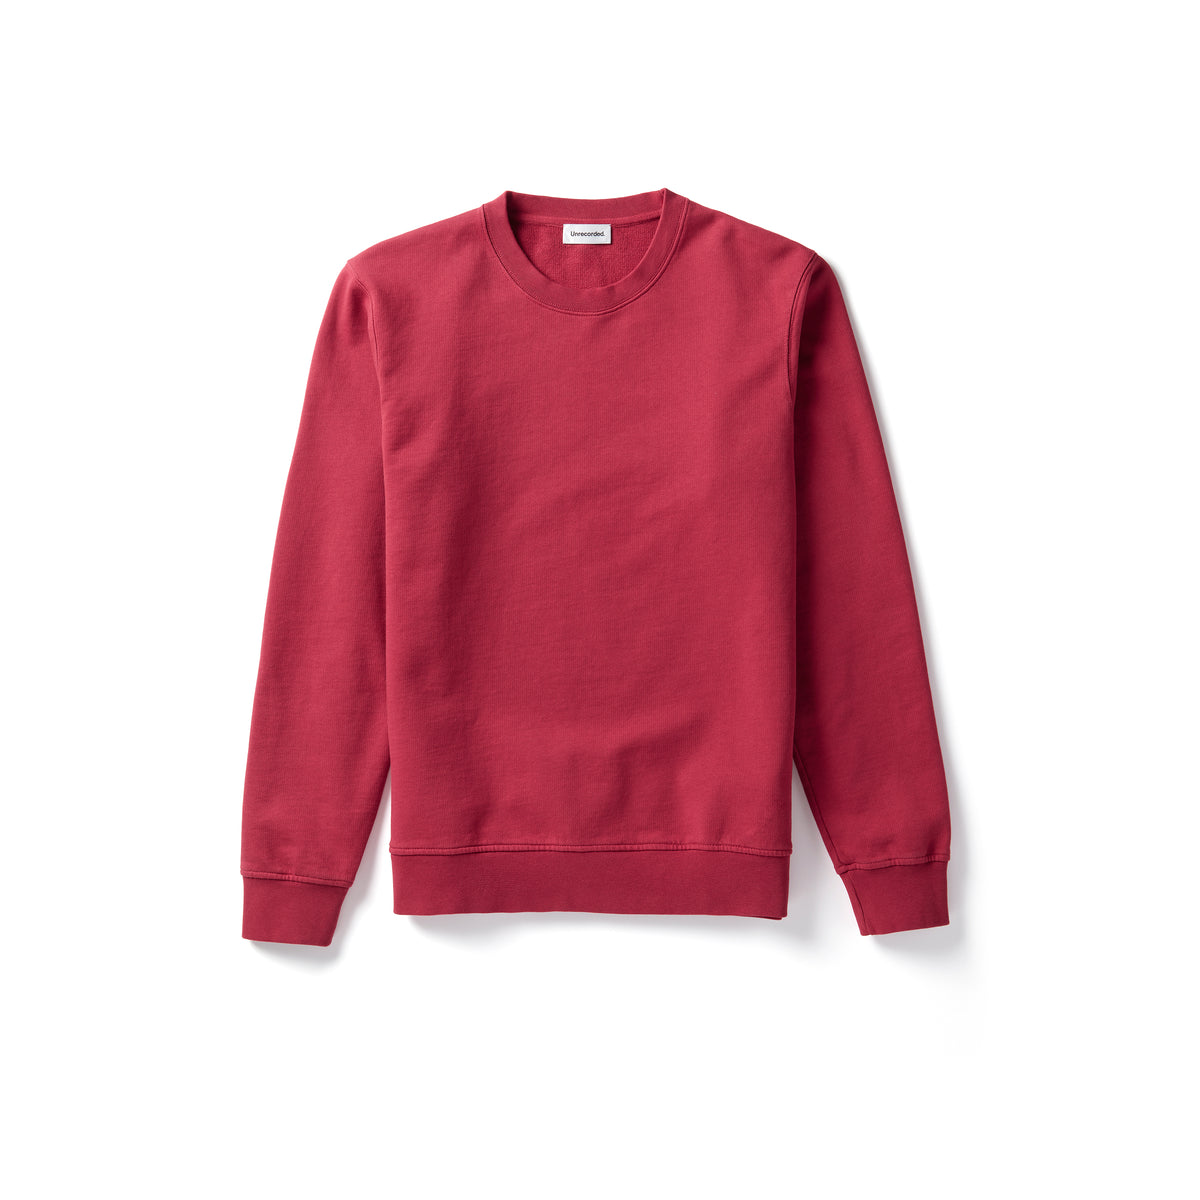 Sweater in Red made from organic cotton - Alternate